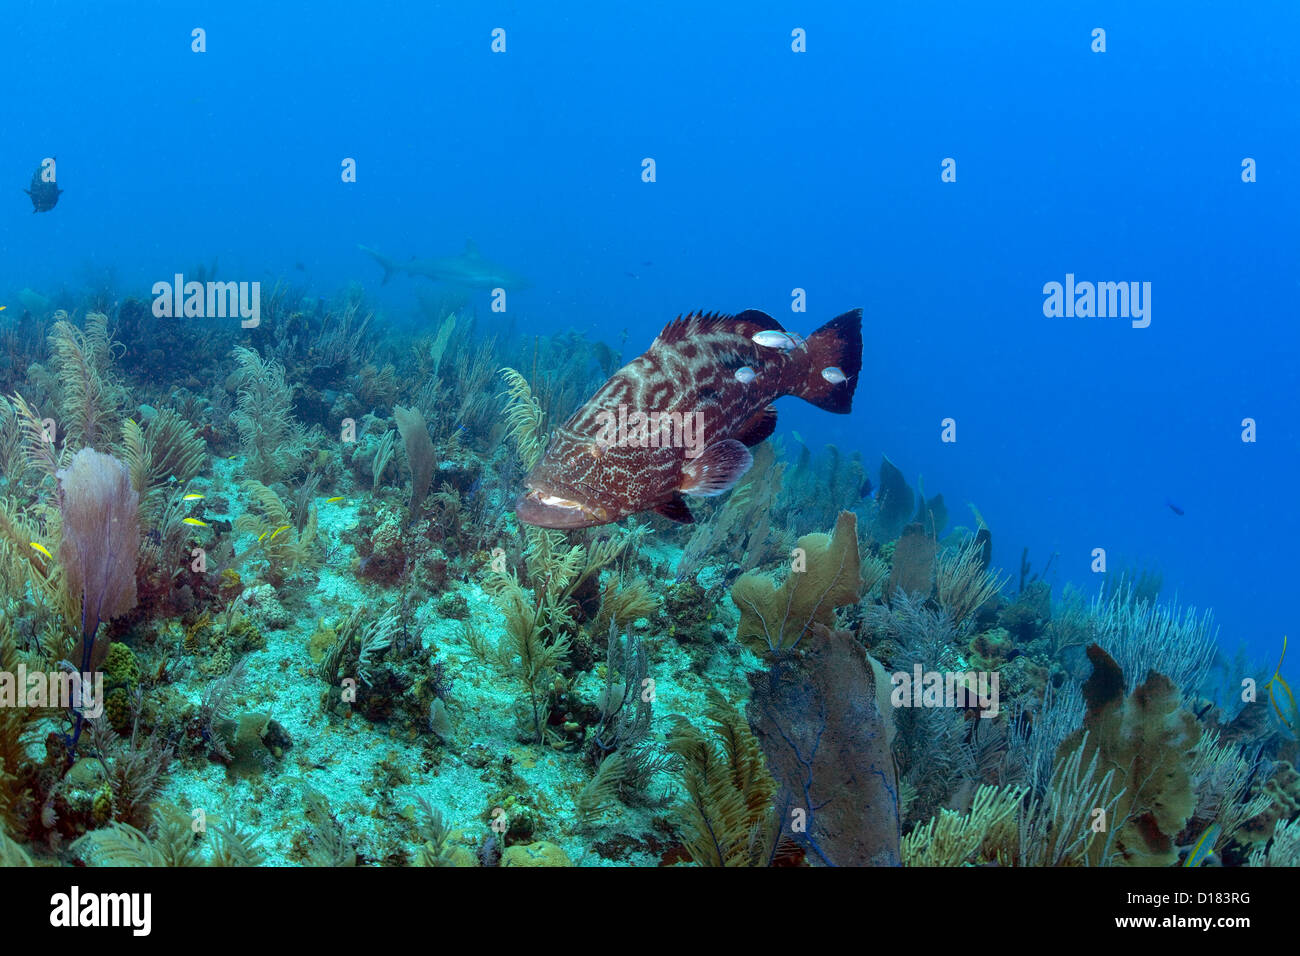 A grouper swims over a coral reef. - Stock Image